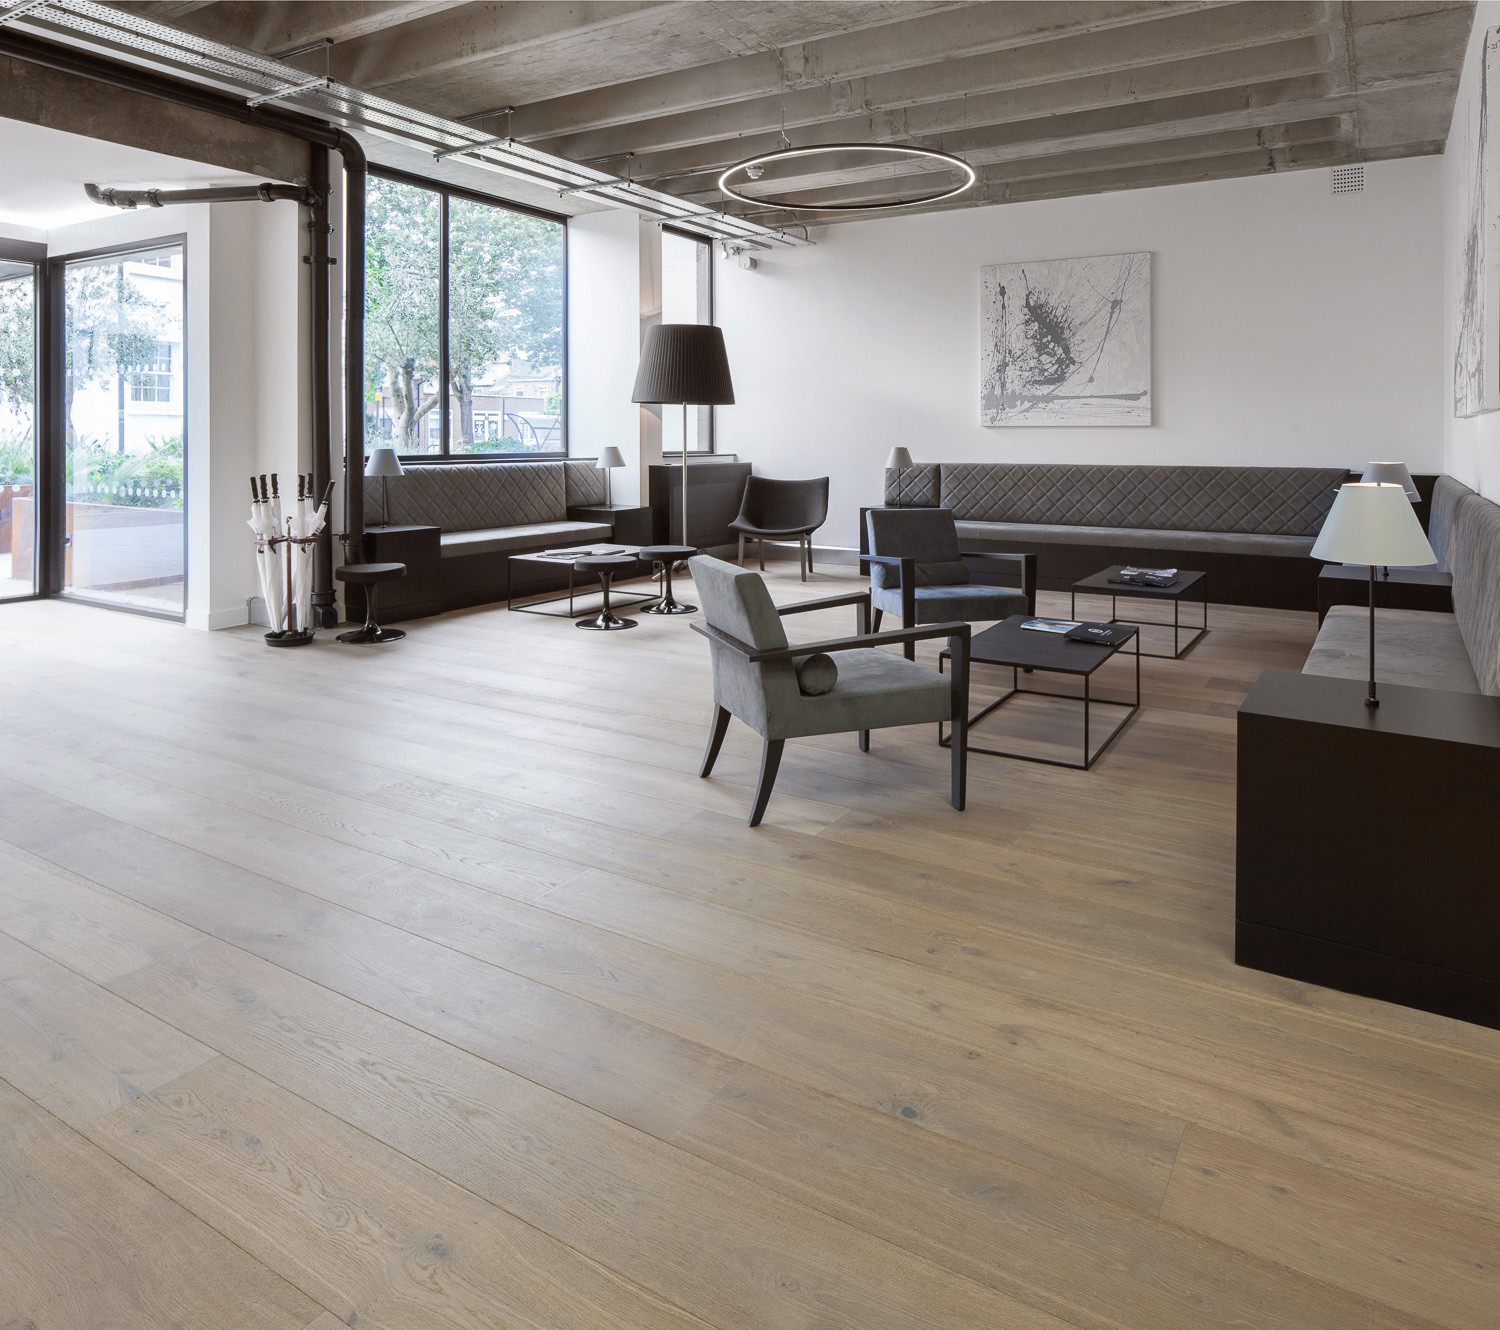 discount hardwood floors molding los angeles ca of blog archives the new reclaimed flooring companythe new inside the report indicated that 82 of workers who were employed in places with eight or more wood surfaces had higher personal productivity mood concentration